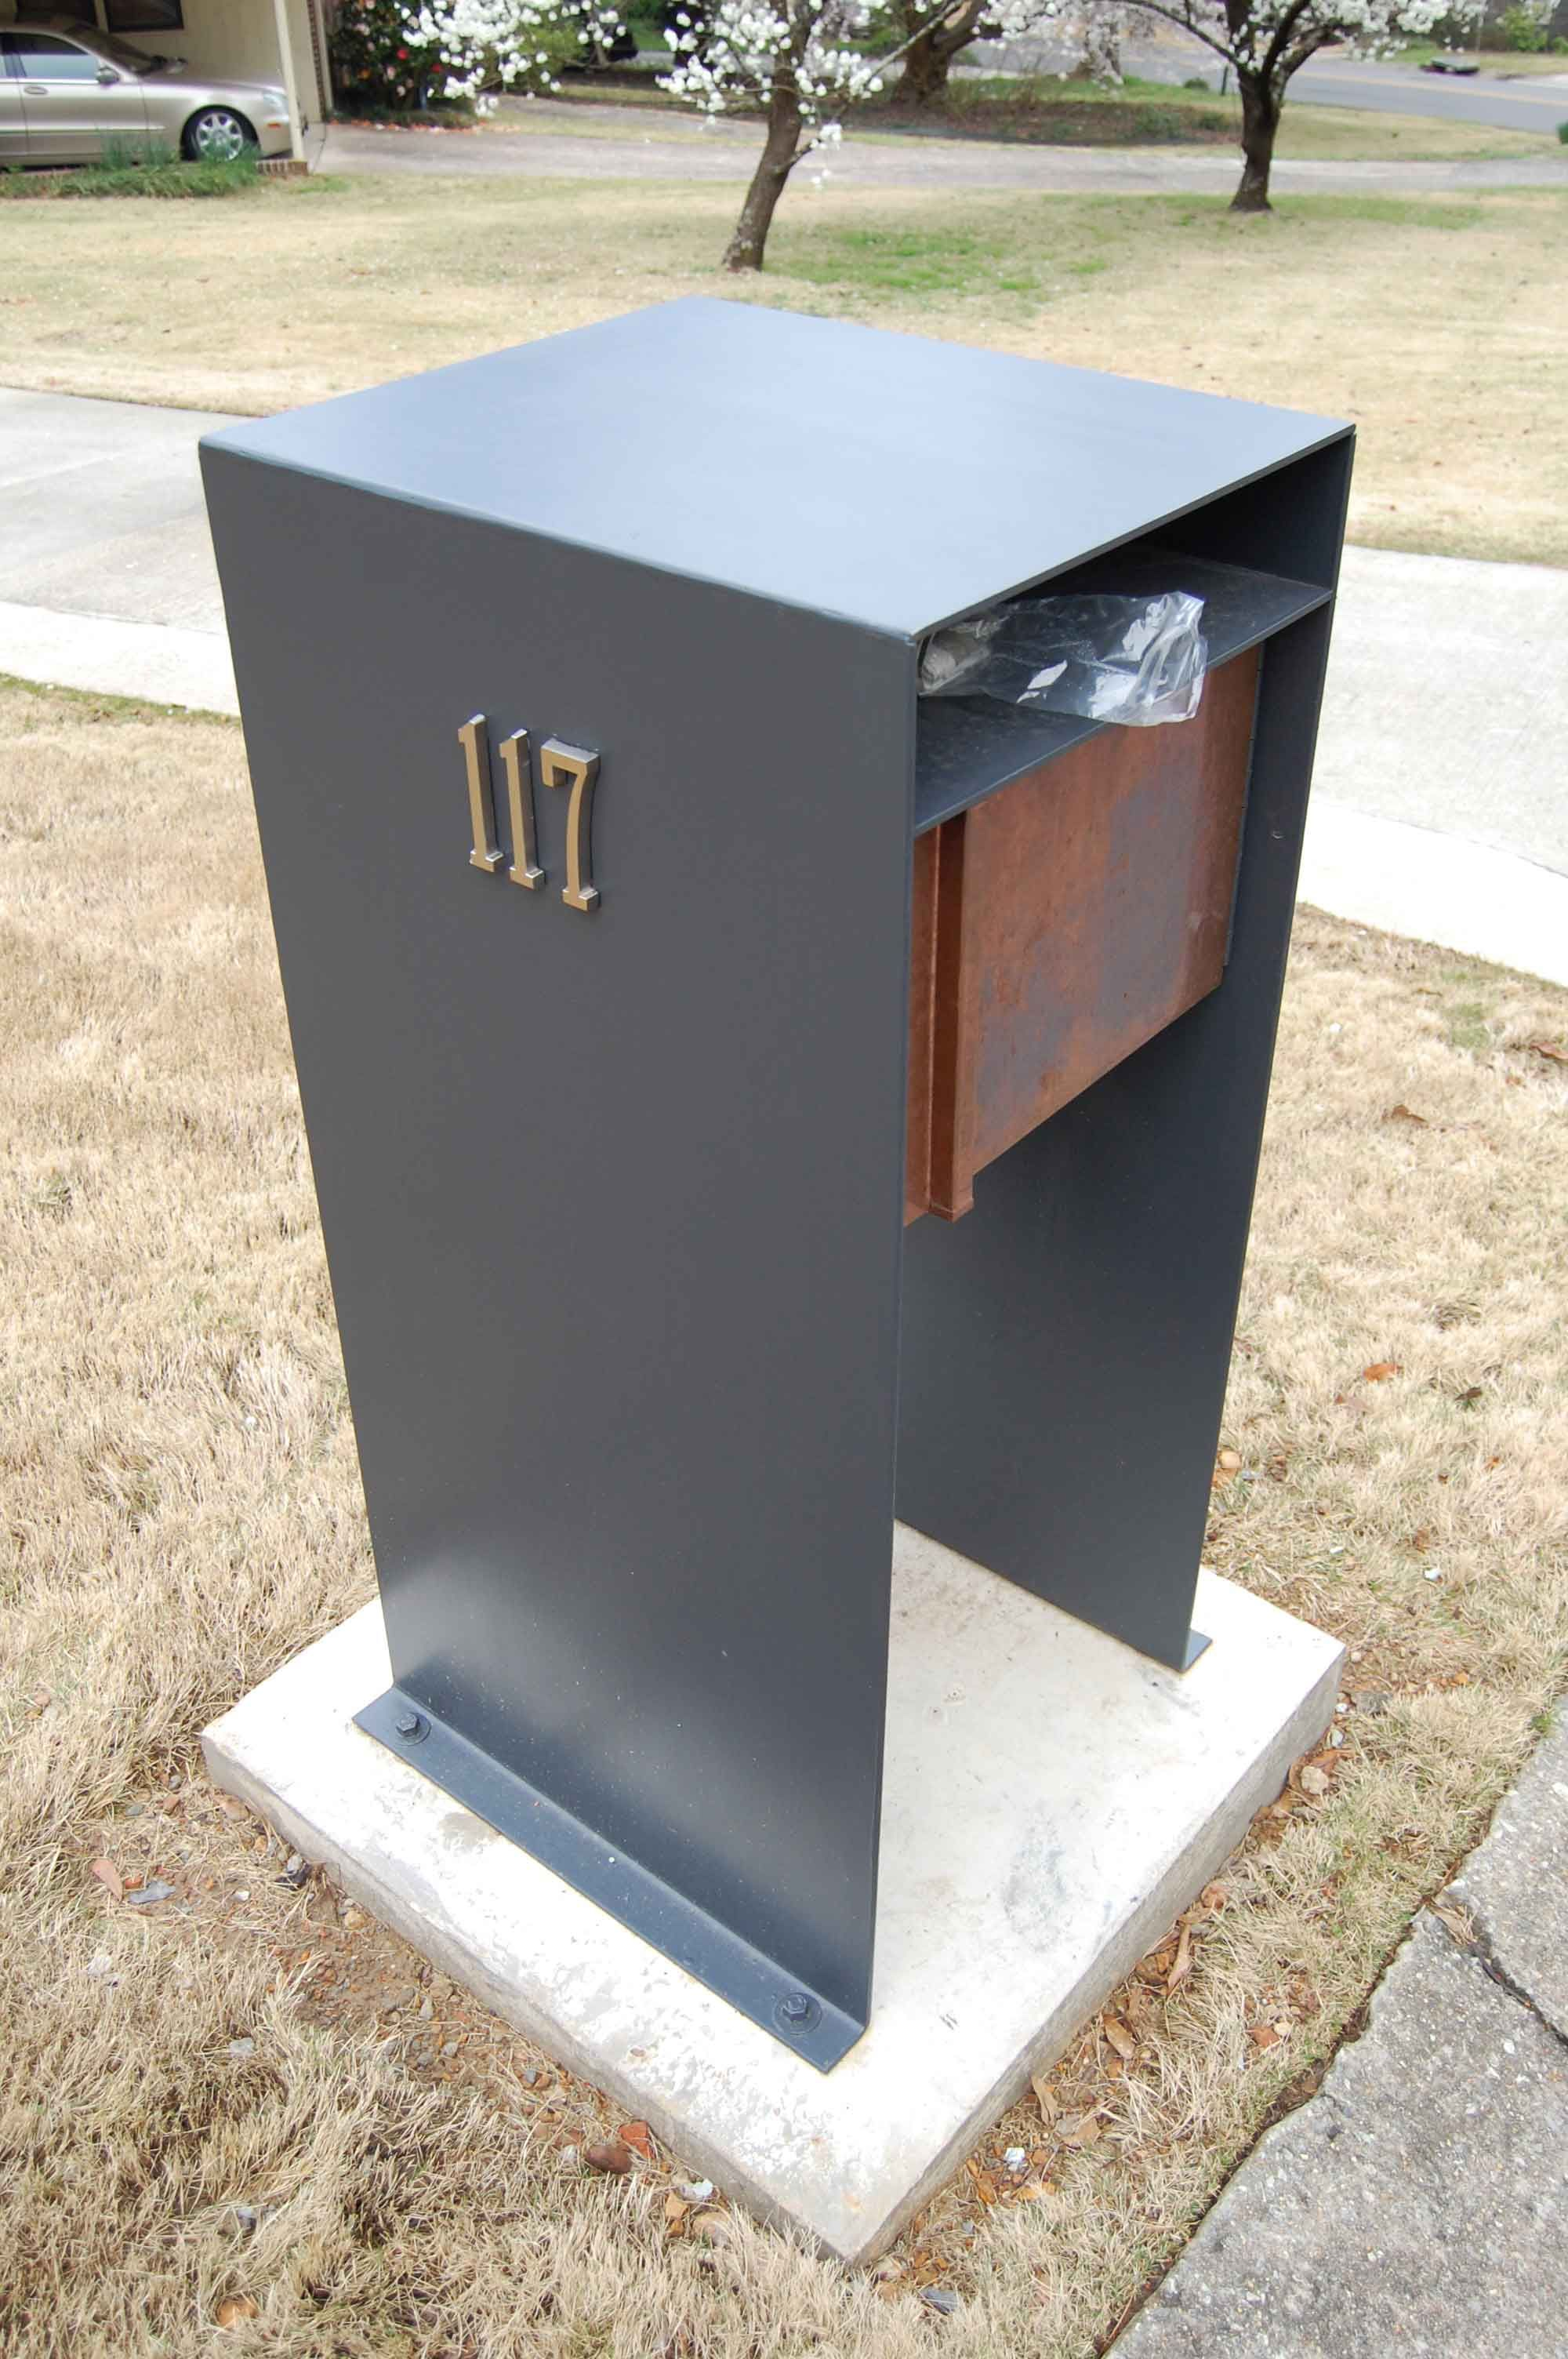 Likeness Of Stylish Post Modern Mail Box Invites More Letters In Exquisite Look Modern Mailbox Mid Century Modern Mailbox Mailbox Design